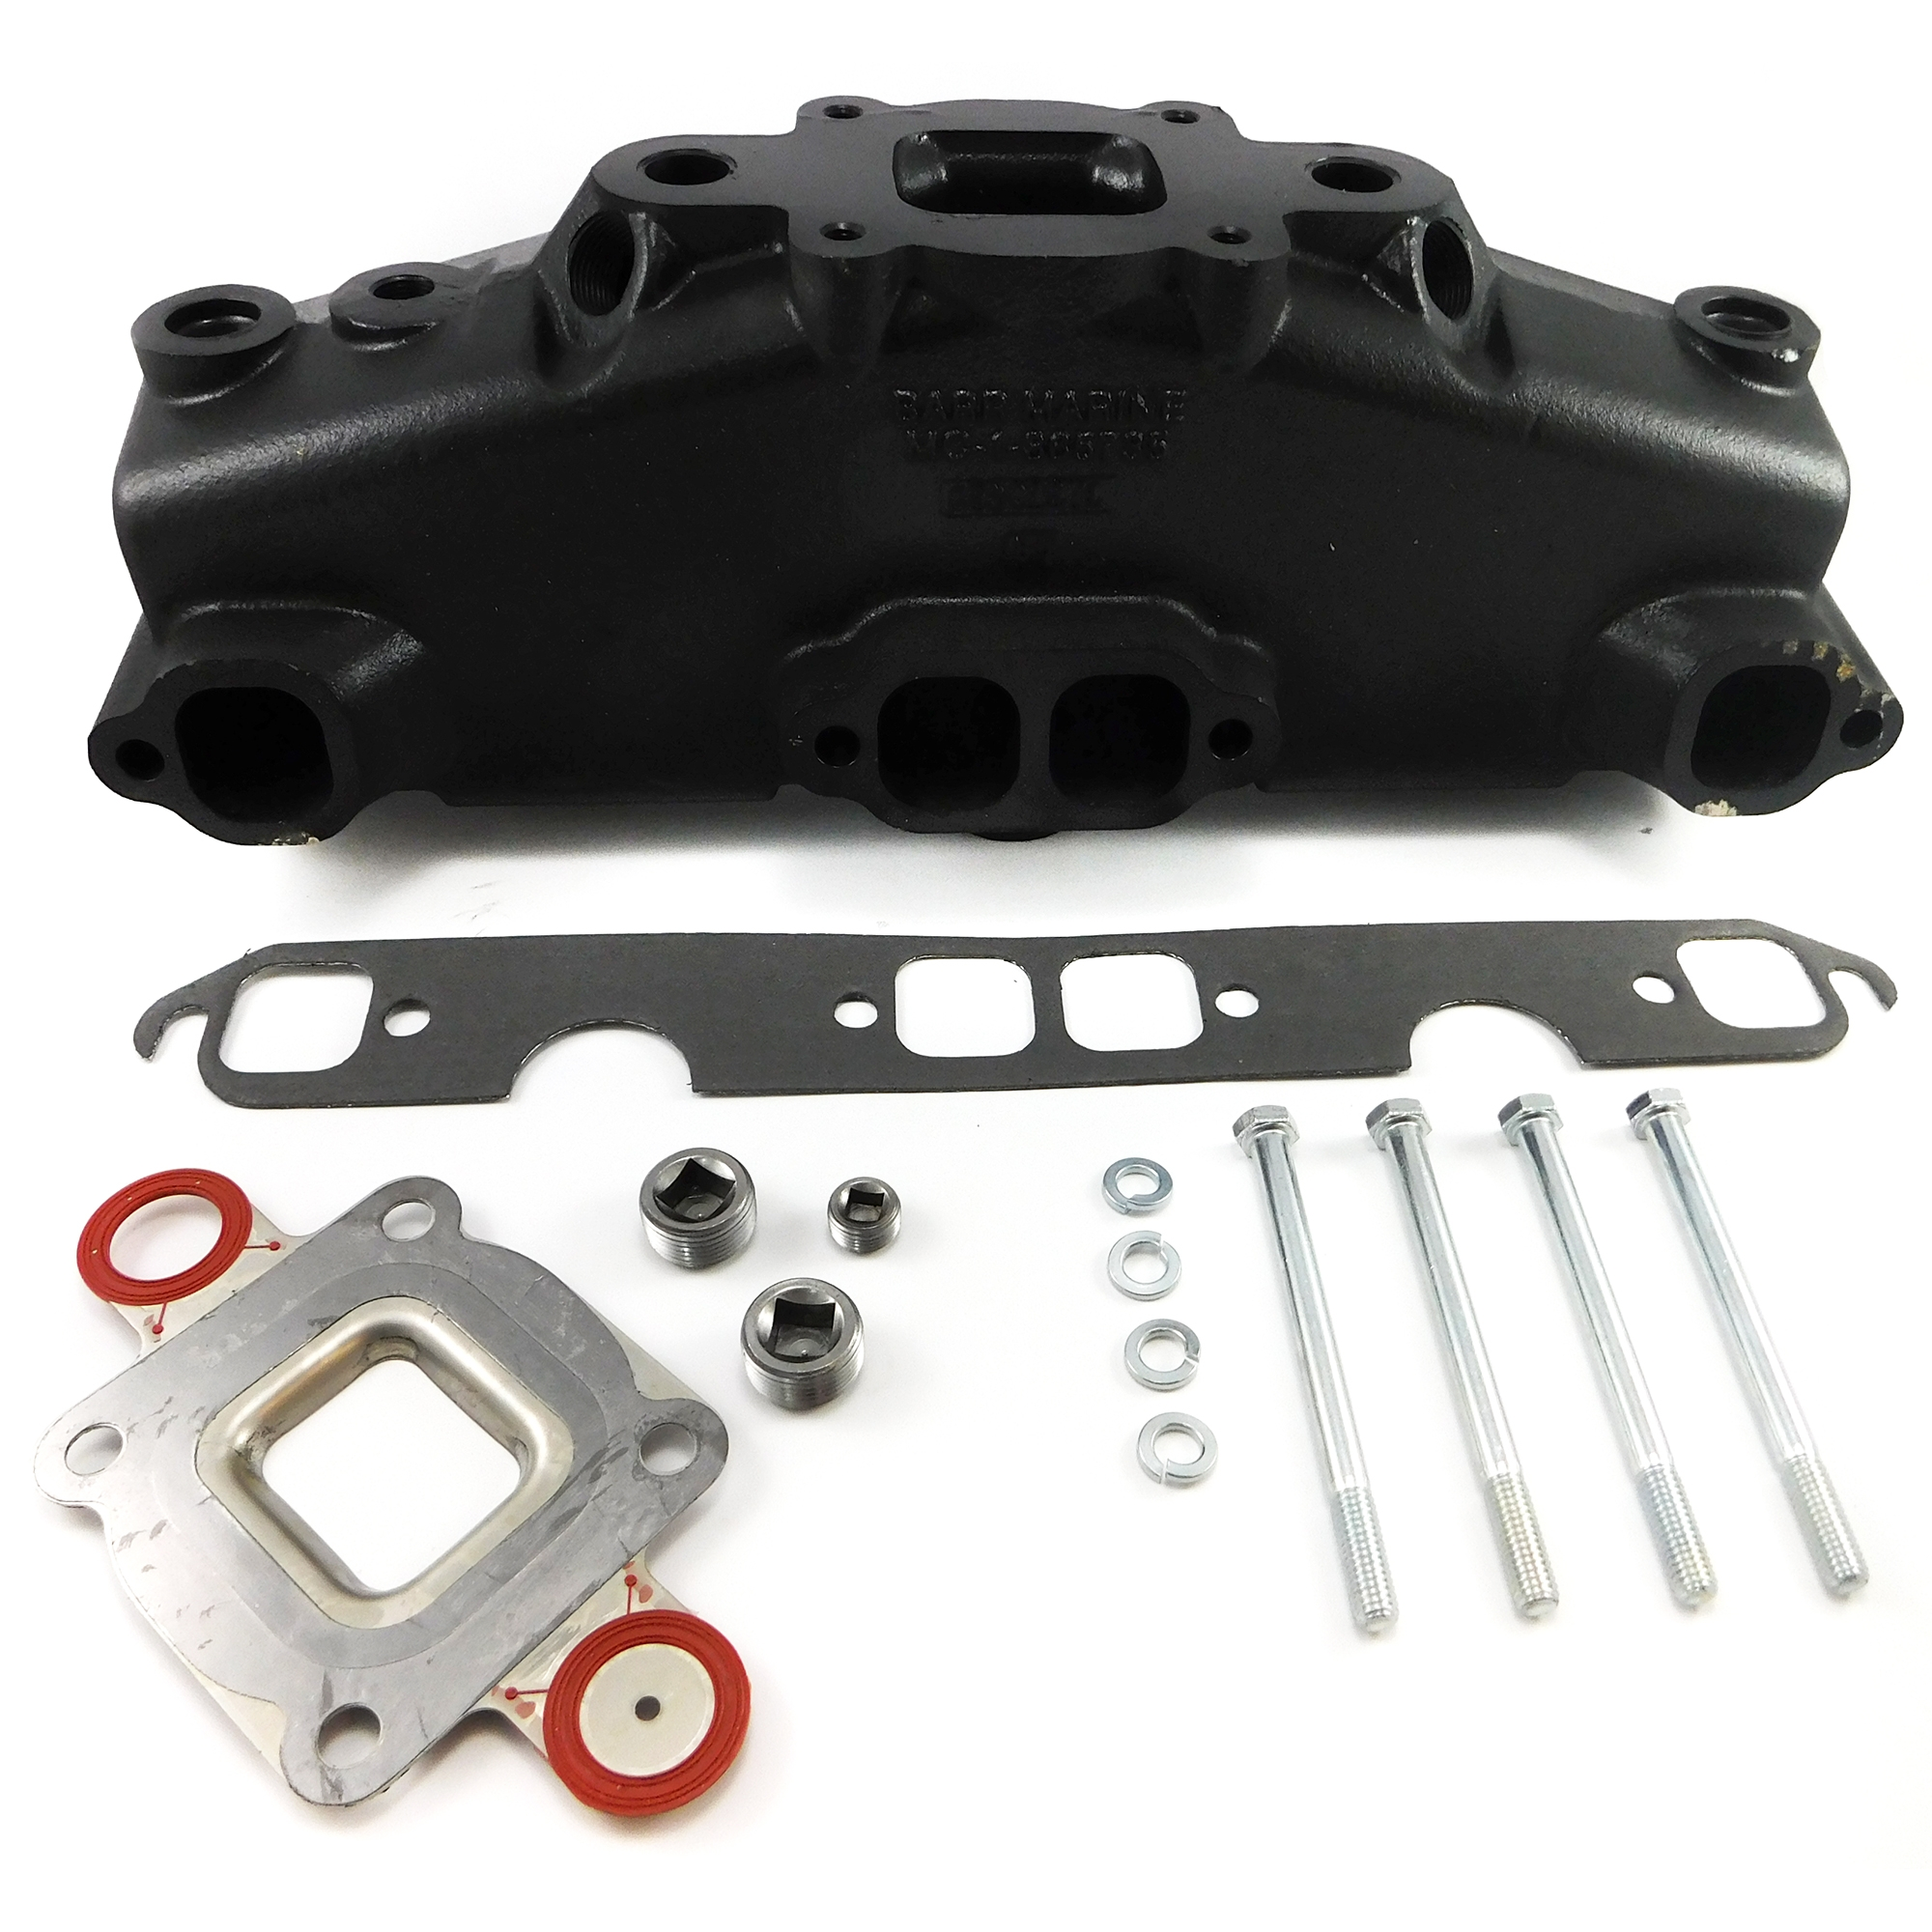 Dry Joint Exhaust Manifold 5.0L 305CI to 5.7L 350CI Mercruiser Style